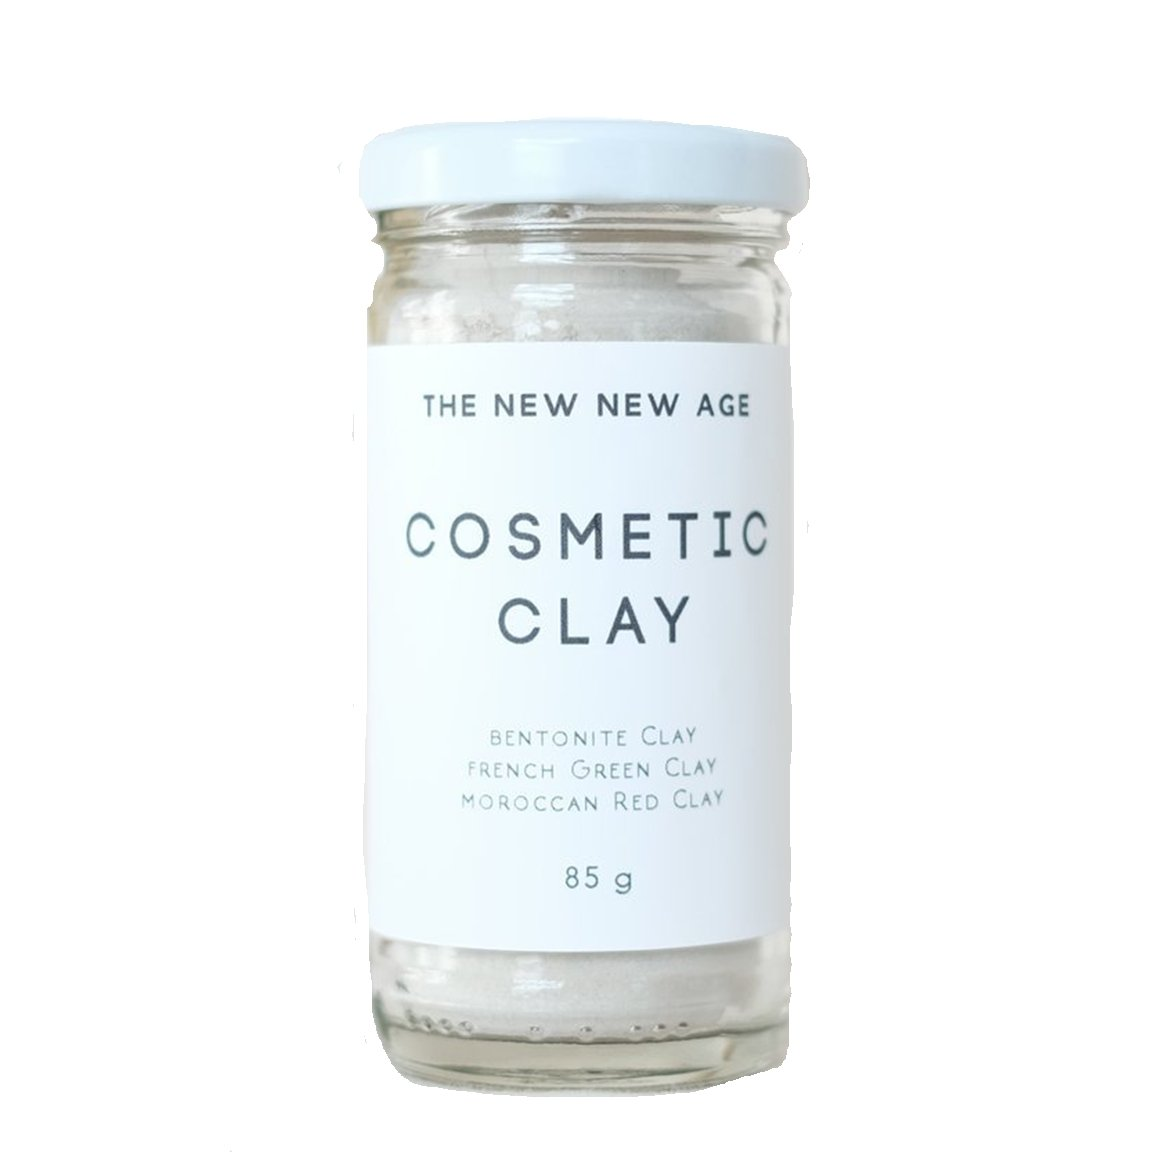 Cosmetic Clay Facial Mask by The New New Age